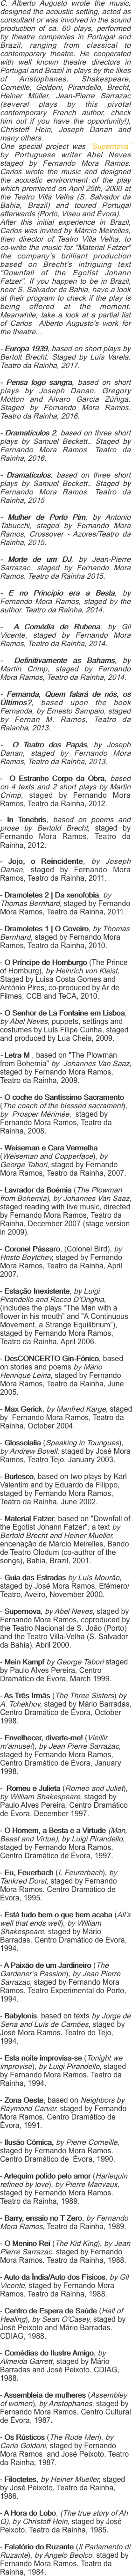 Carlos wrote the music, designed